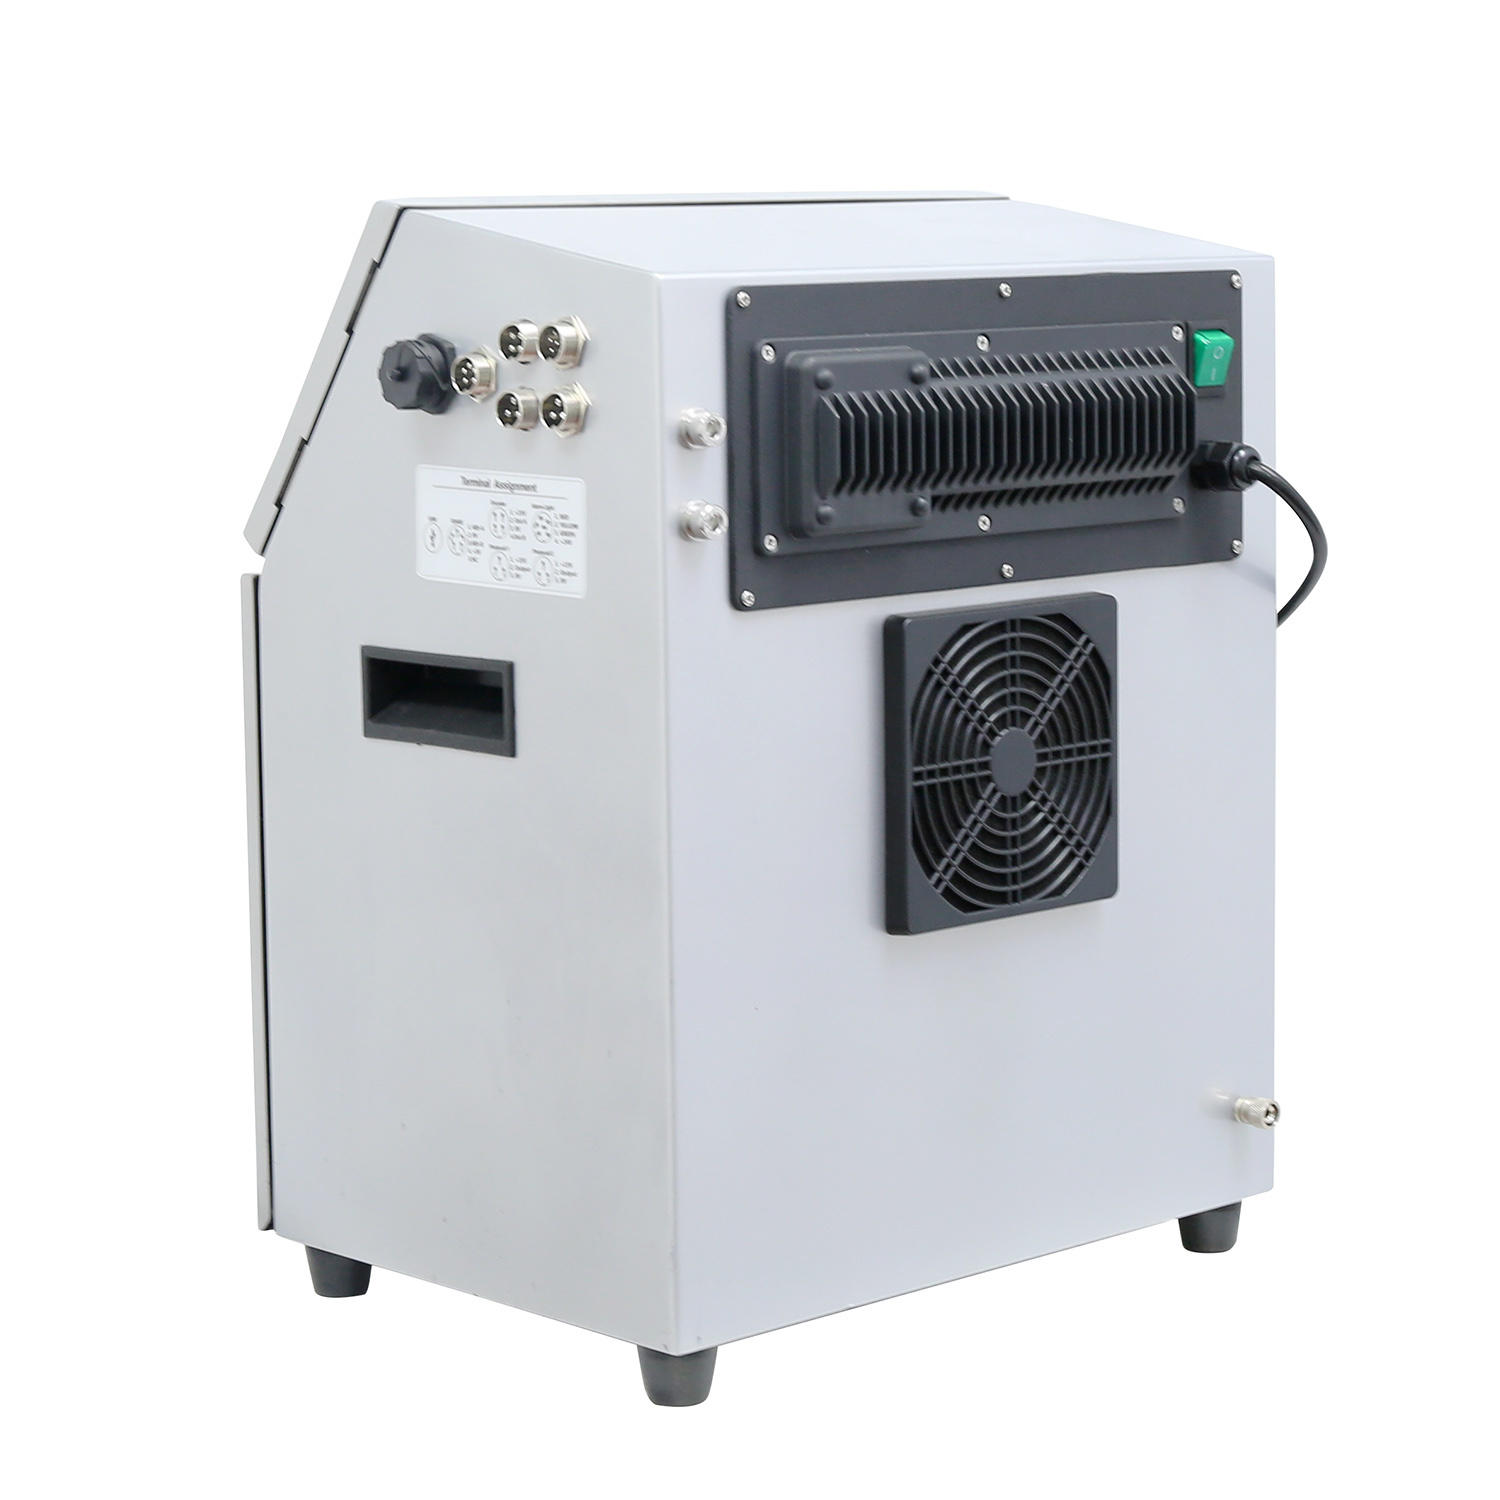 Leadtech Lt800 Cij Inkjet Printer for Bar Code Printing